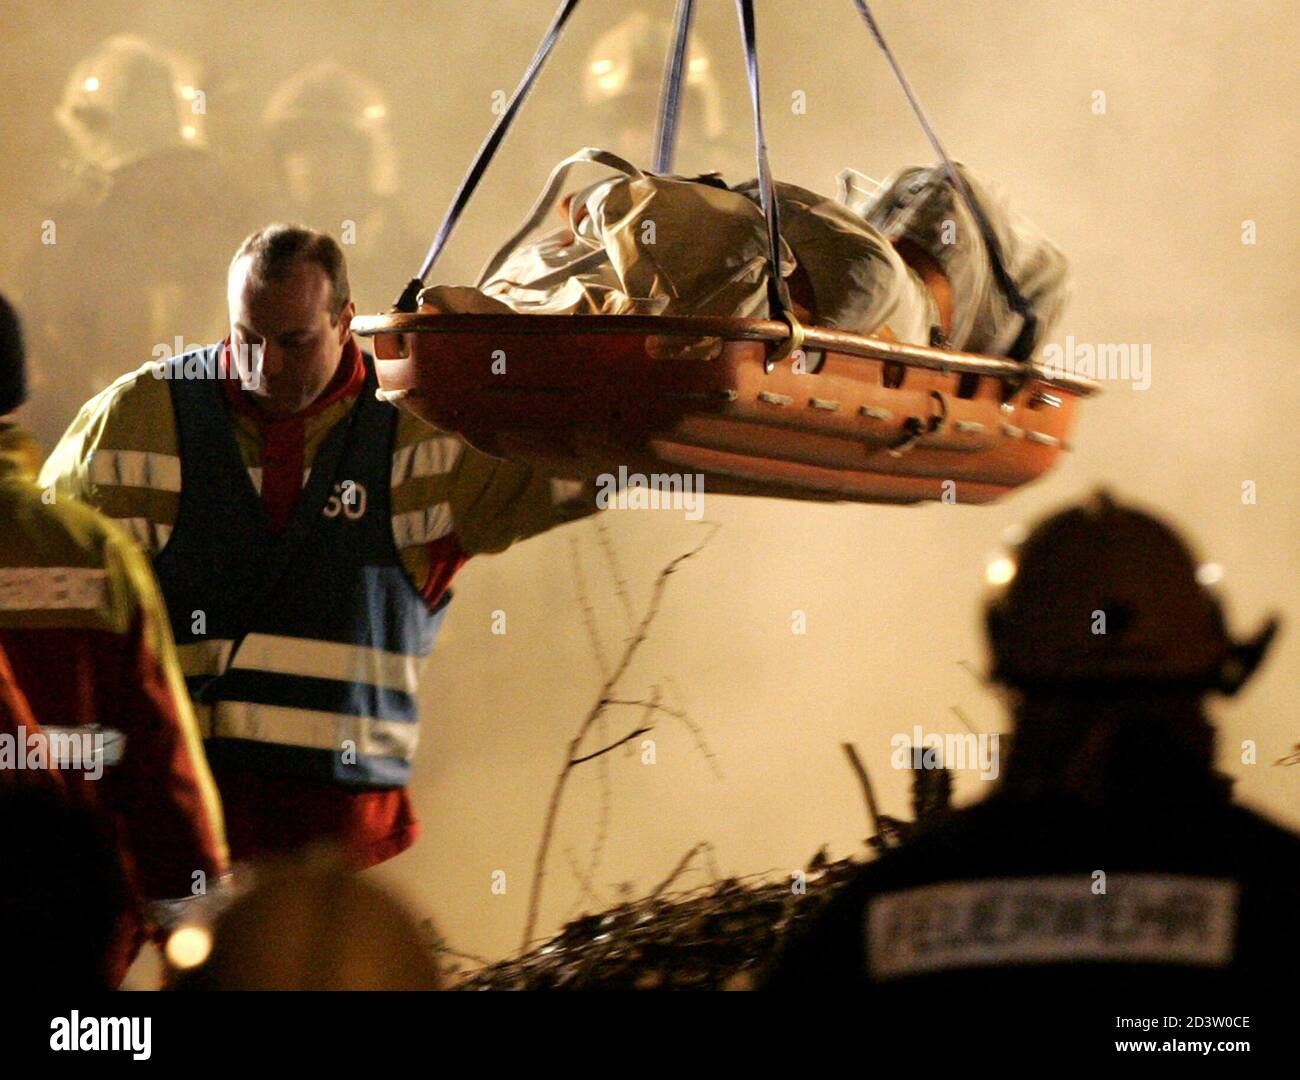 The body of a firefighter is lifted from an underground car park after the roof collapsed and buried up to seven fire fighters in the town of Gretzenbach between the cities of Basel and Zurich November 27, 2004. Construction experts, earthquake rescue specialists and other fire and rescue personnel raced against time to find the men who had been battling a fire in the residential car park when the roof caved in and trapped them in its rubble. Pictures of the month November 2004 REUTERS/Ruben Sprich  RS/WS Foto de stock